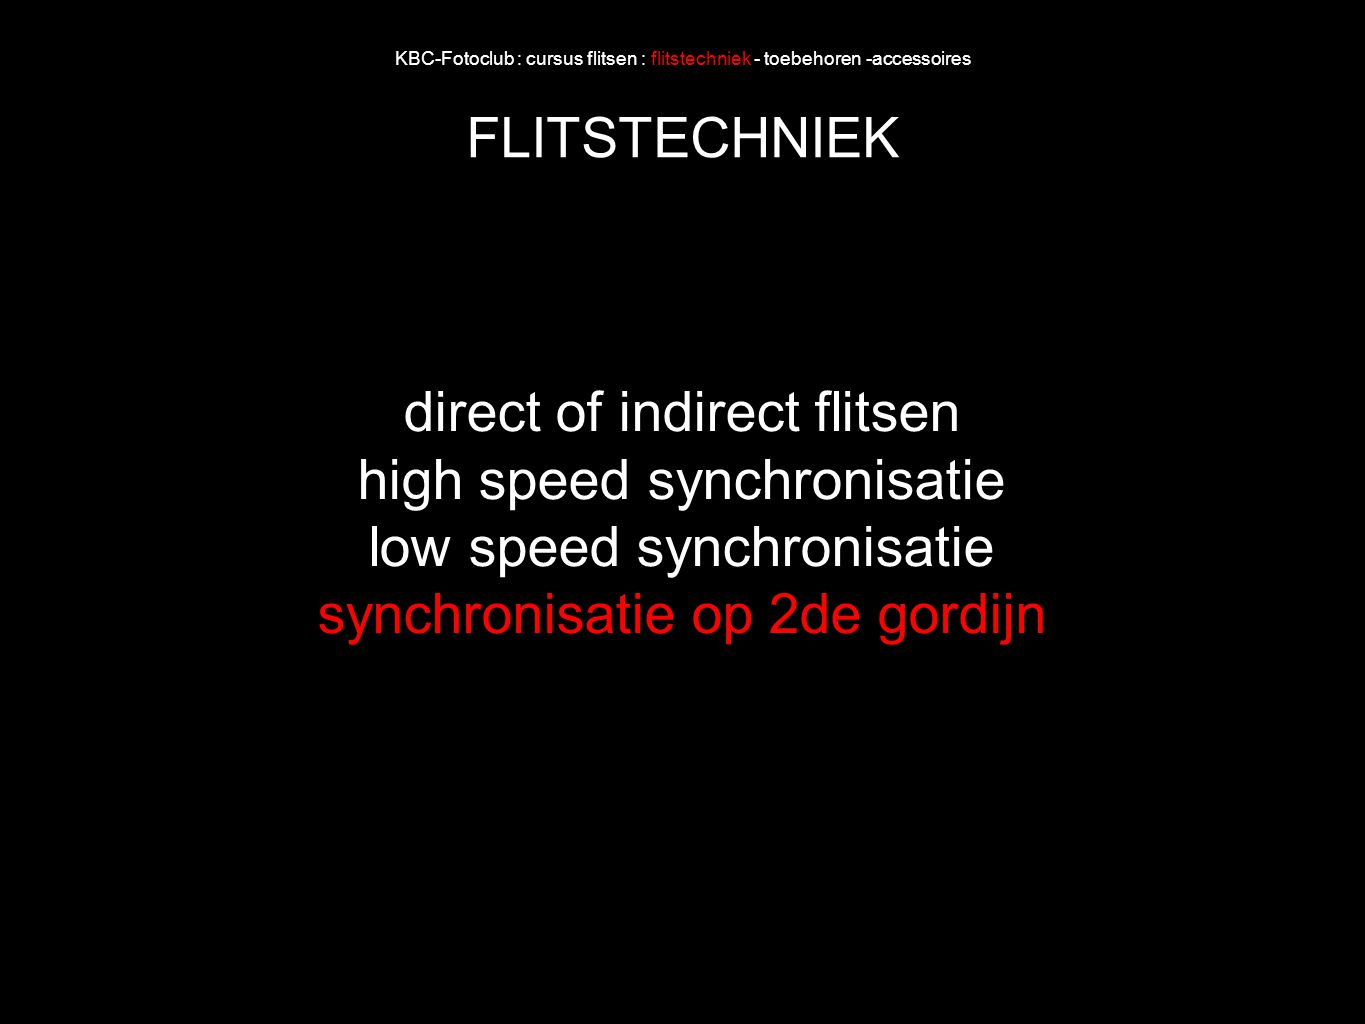 direct of indirect flitsen high speed synchronisatie